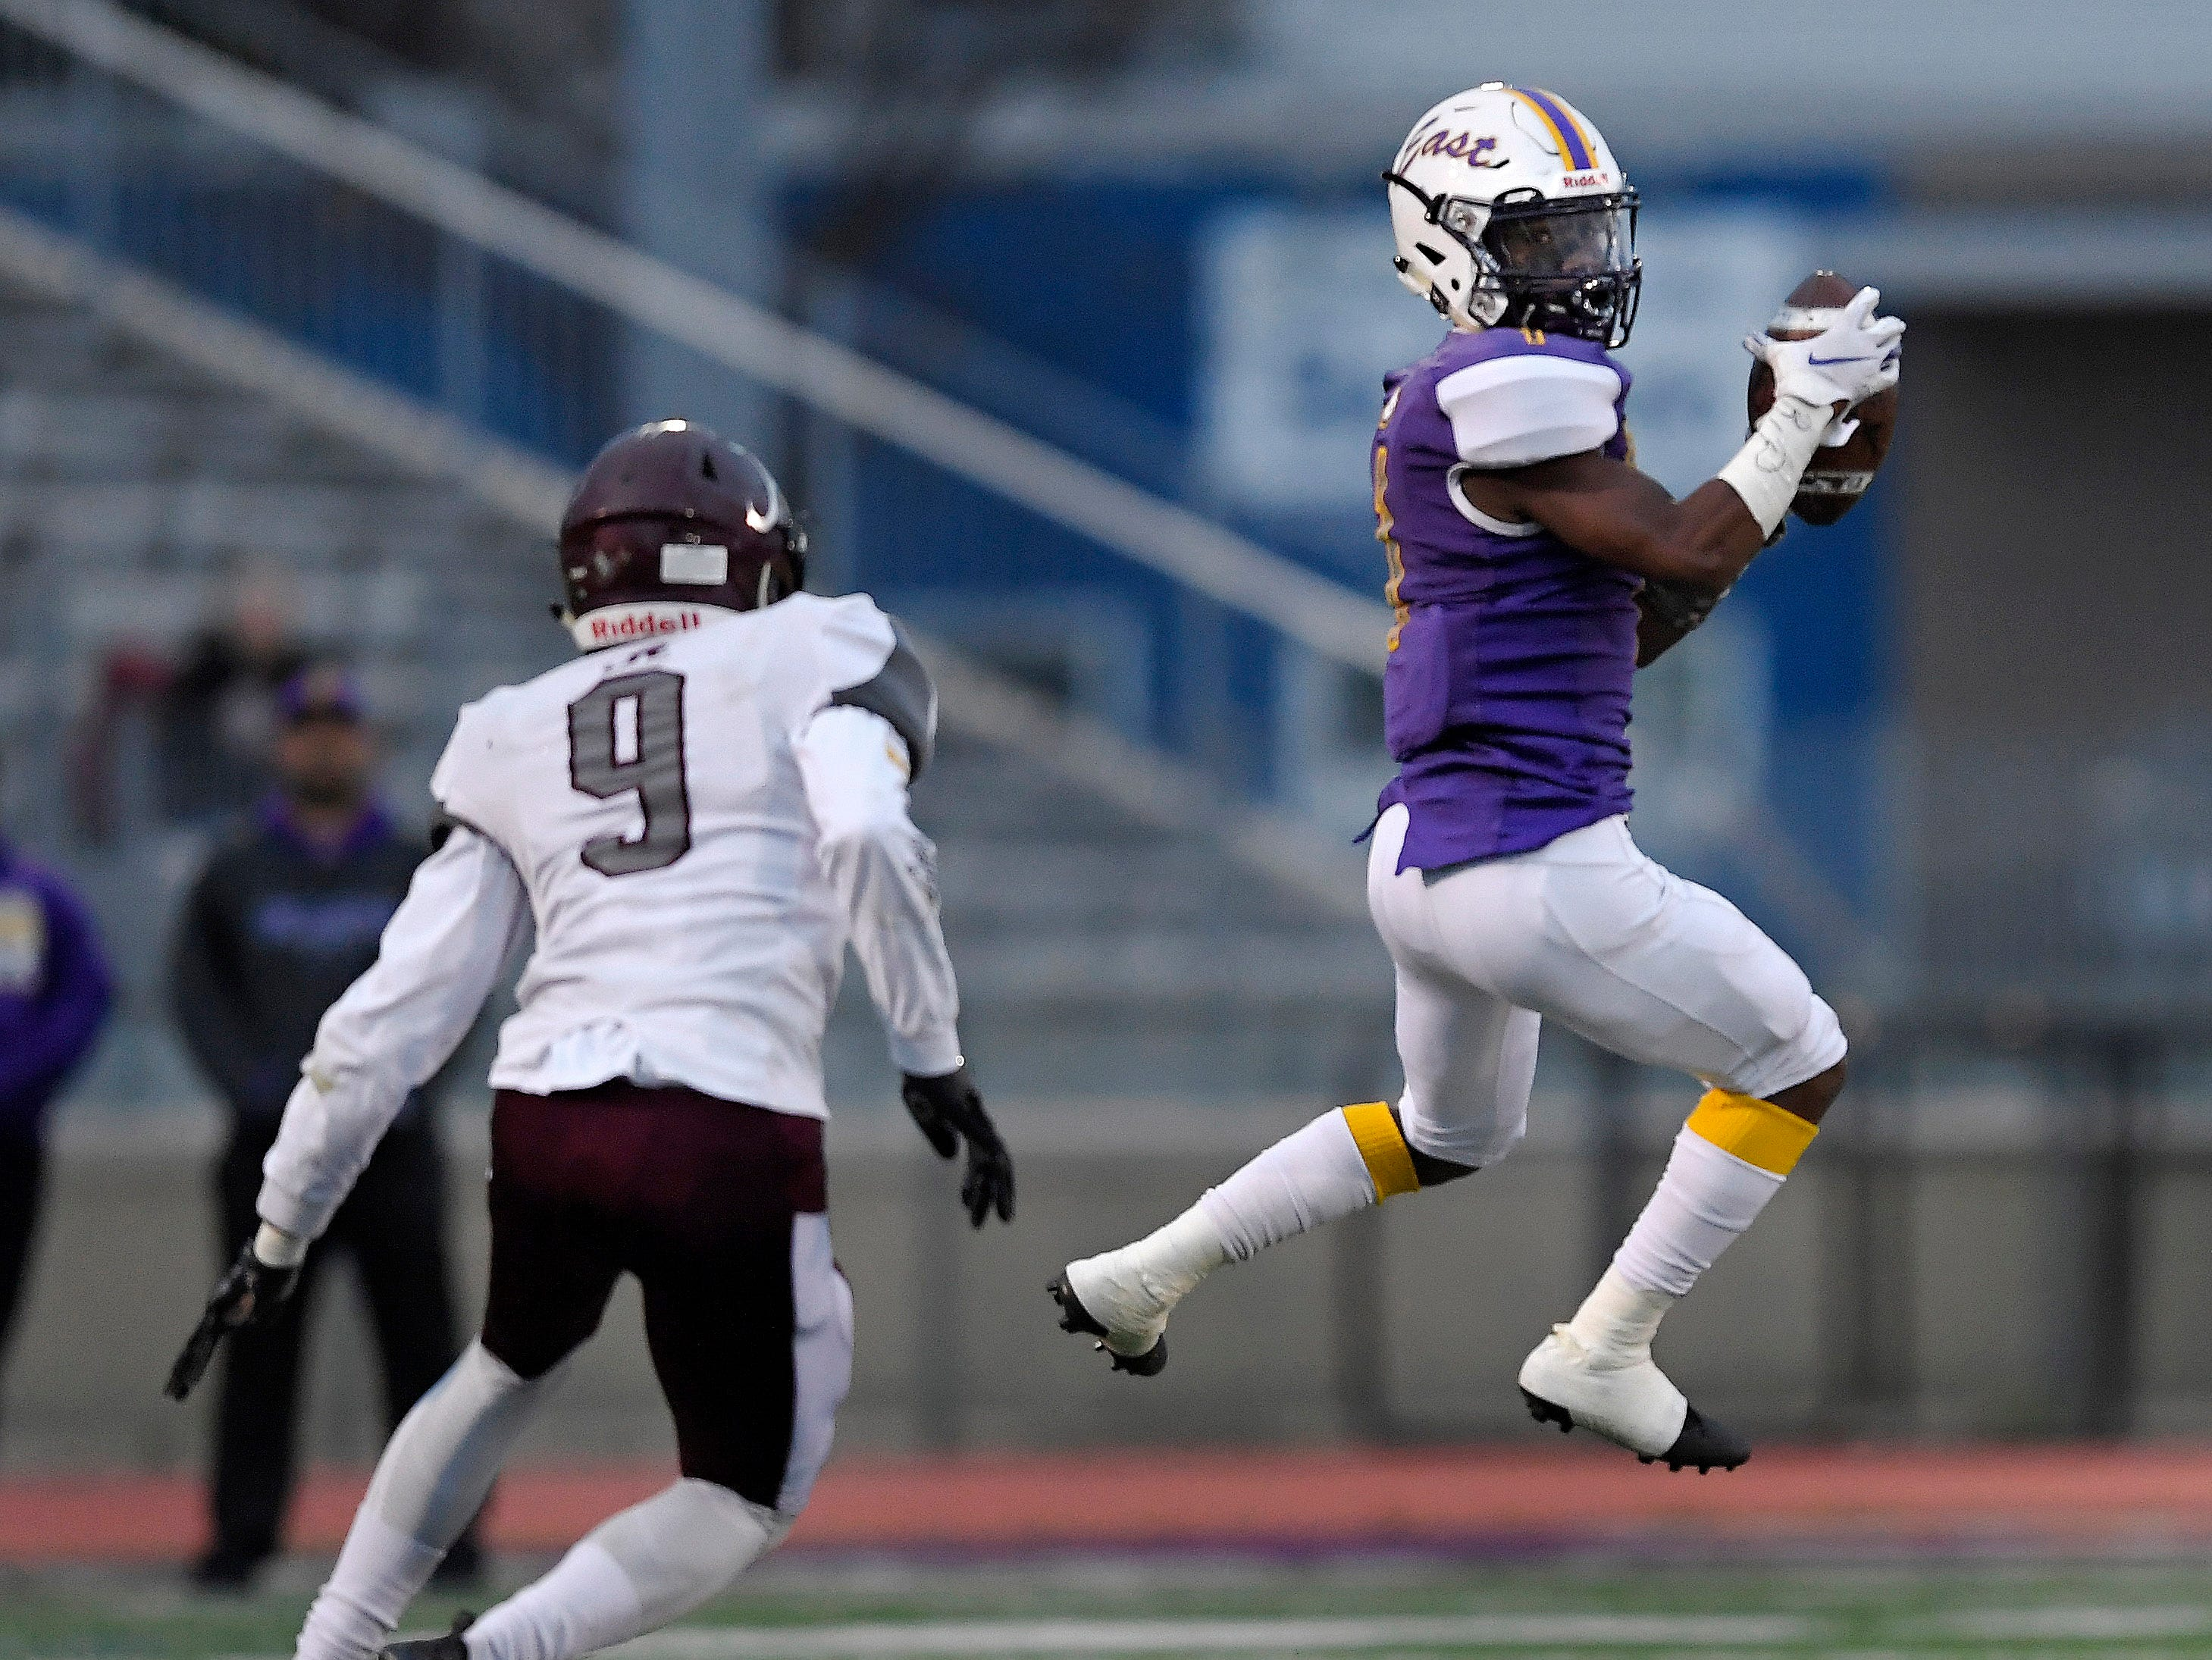 East's Seven McGee, right, catches a pass in front of Greece Arcadia's Shakim Harris during a Class A sectional quarterfinal played at East High School, Friday, Oct. 19, 2018.